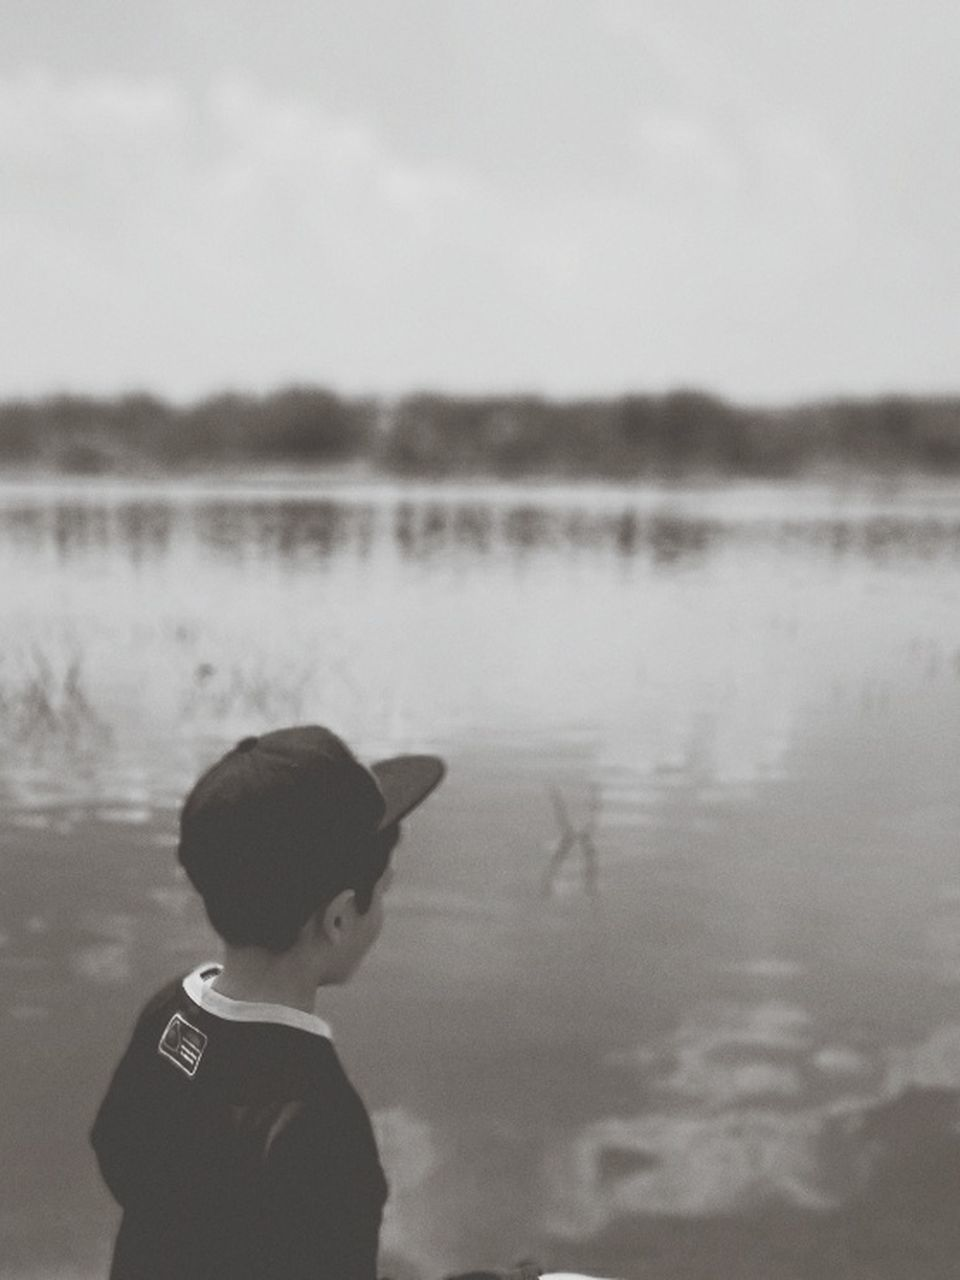 childhood, boys, one person, real people, one boy only, side view, day, focus on foreground, lake, headshot, outdoors, water, sky, close-up, people